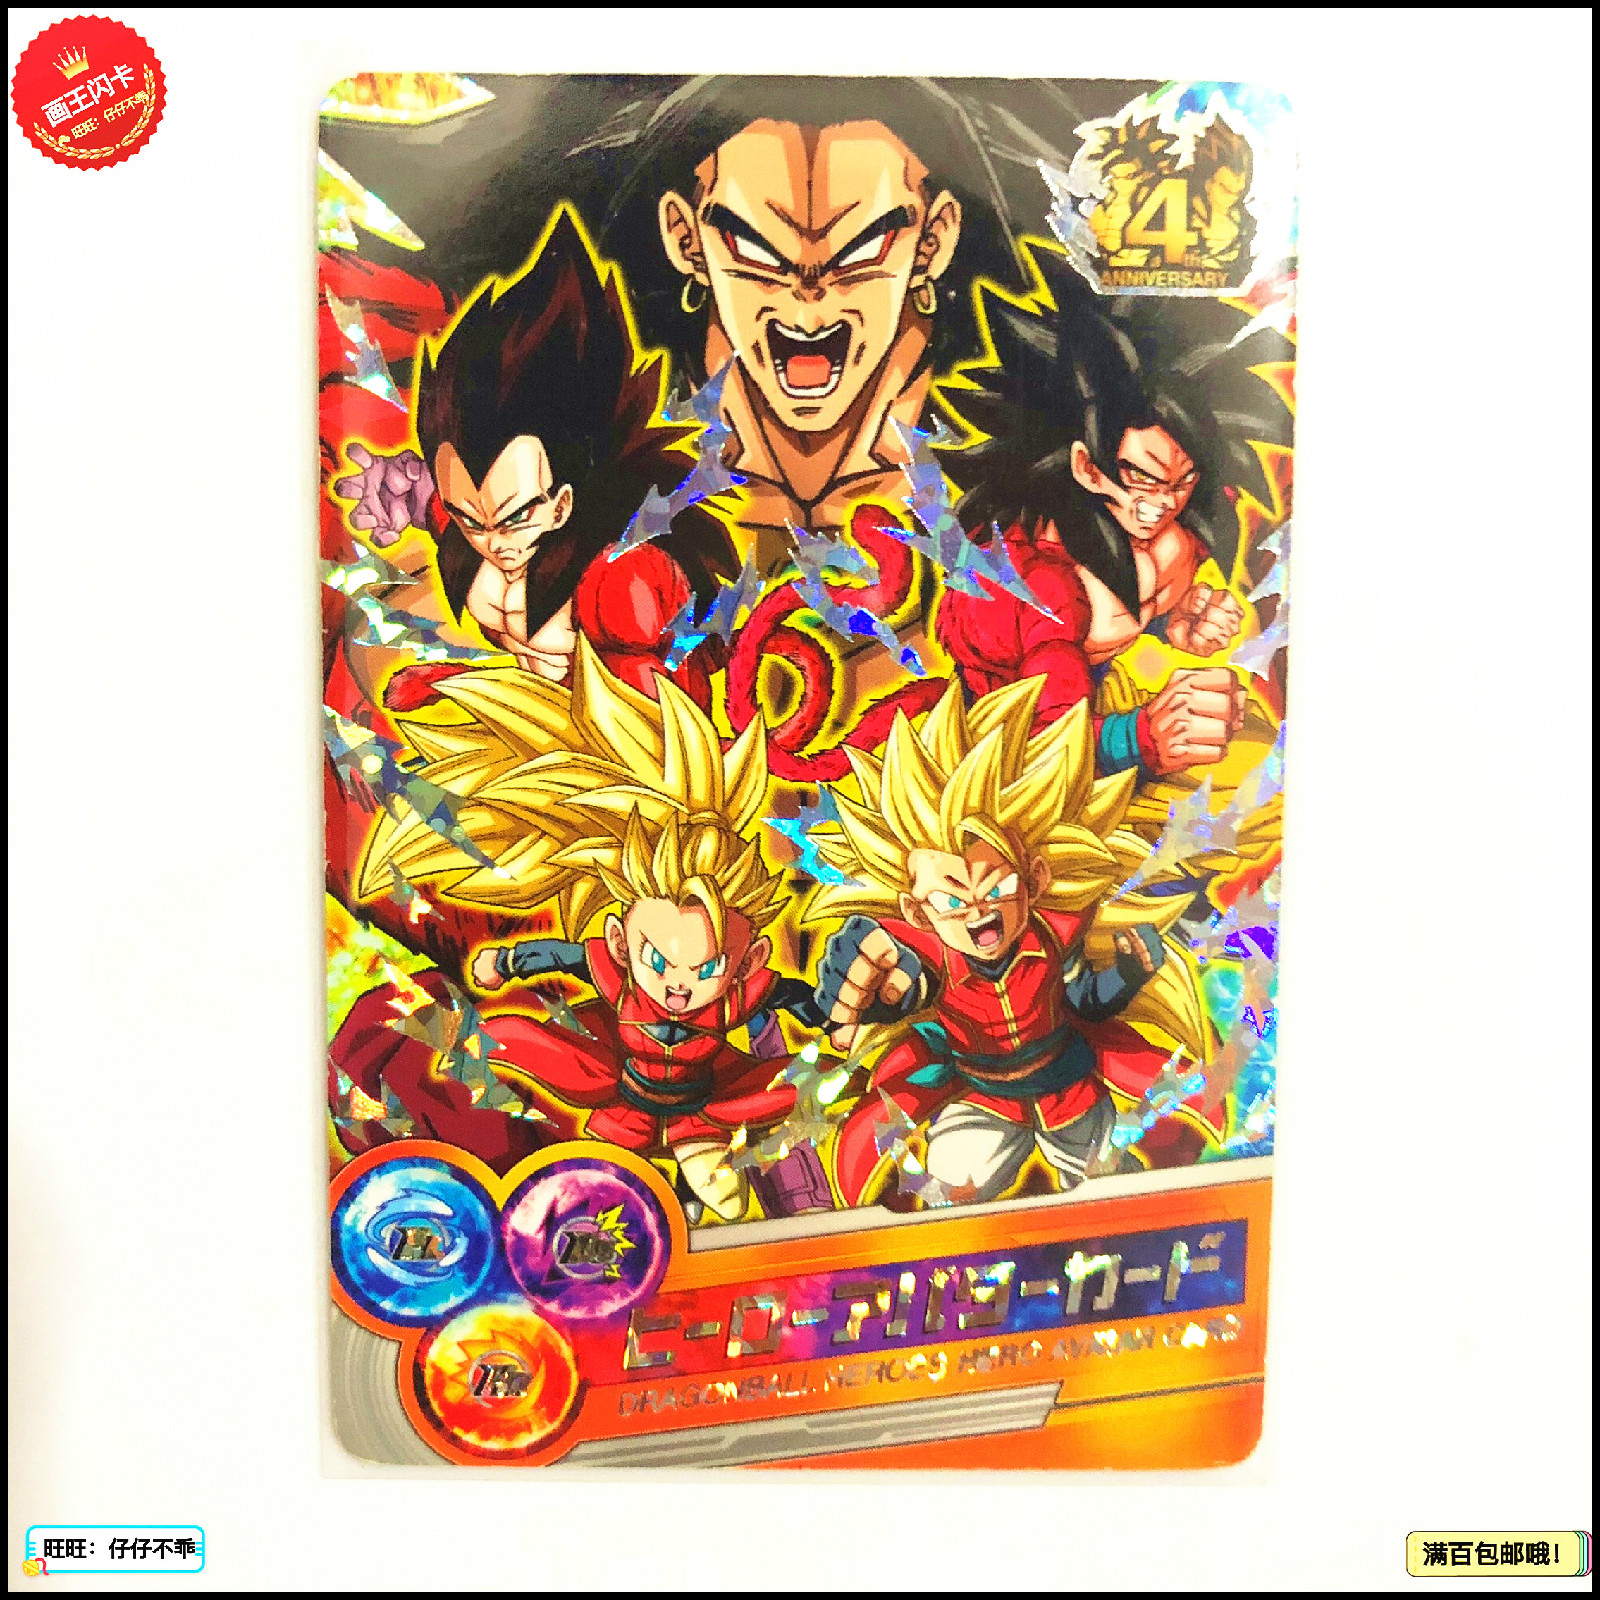 Japan Original Dragon Ball Hero Card 4th Anniversary Special Goku Toys Hobbies Collectibles Game Collection Anime Cards